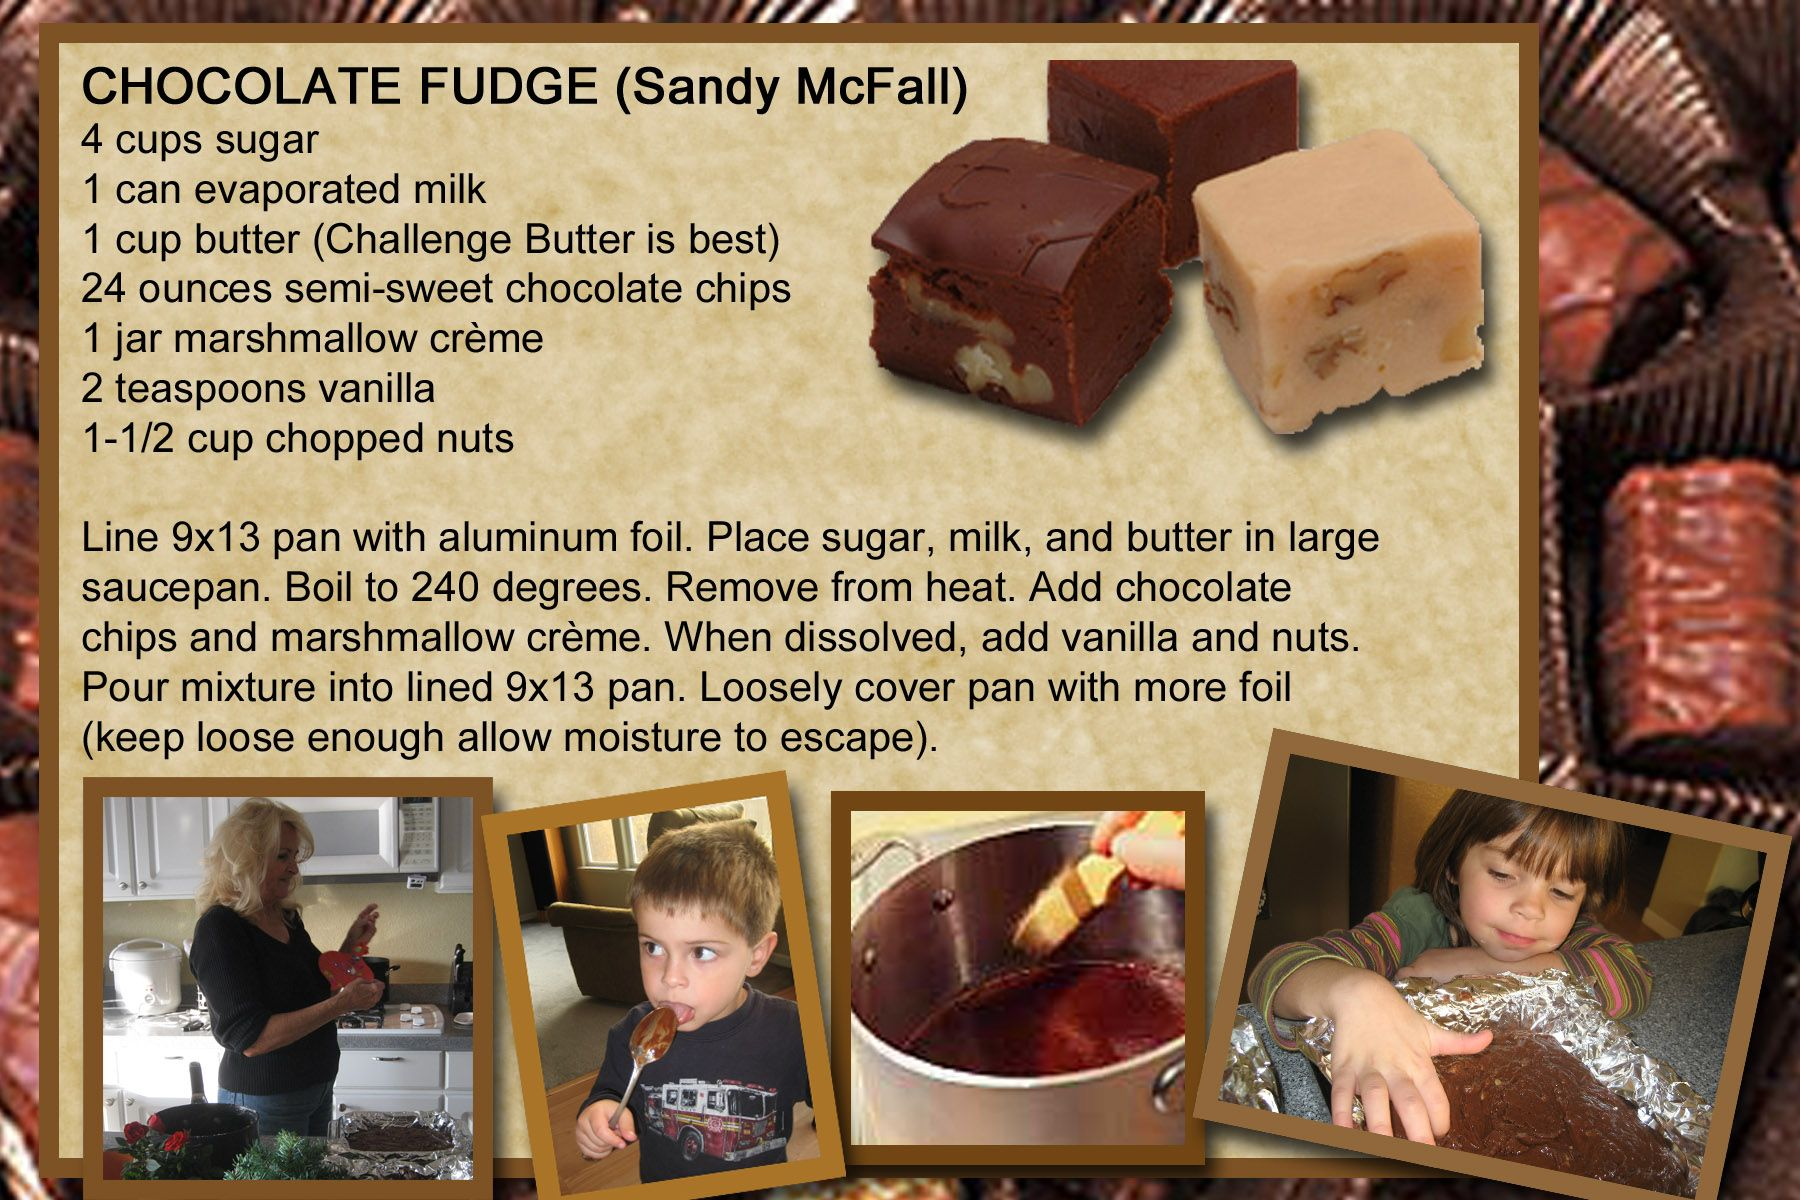 Grandma Sandy S Fudge 4 Cups Sugar 1 Can Evaporated Milk 1 Cup Butter 24 Oz Semi Sweet Chocolate Chips Marshmallow Creme Semi Sweet Chocolate Chips Fudge